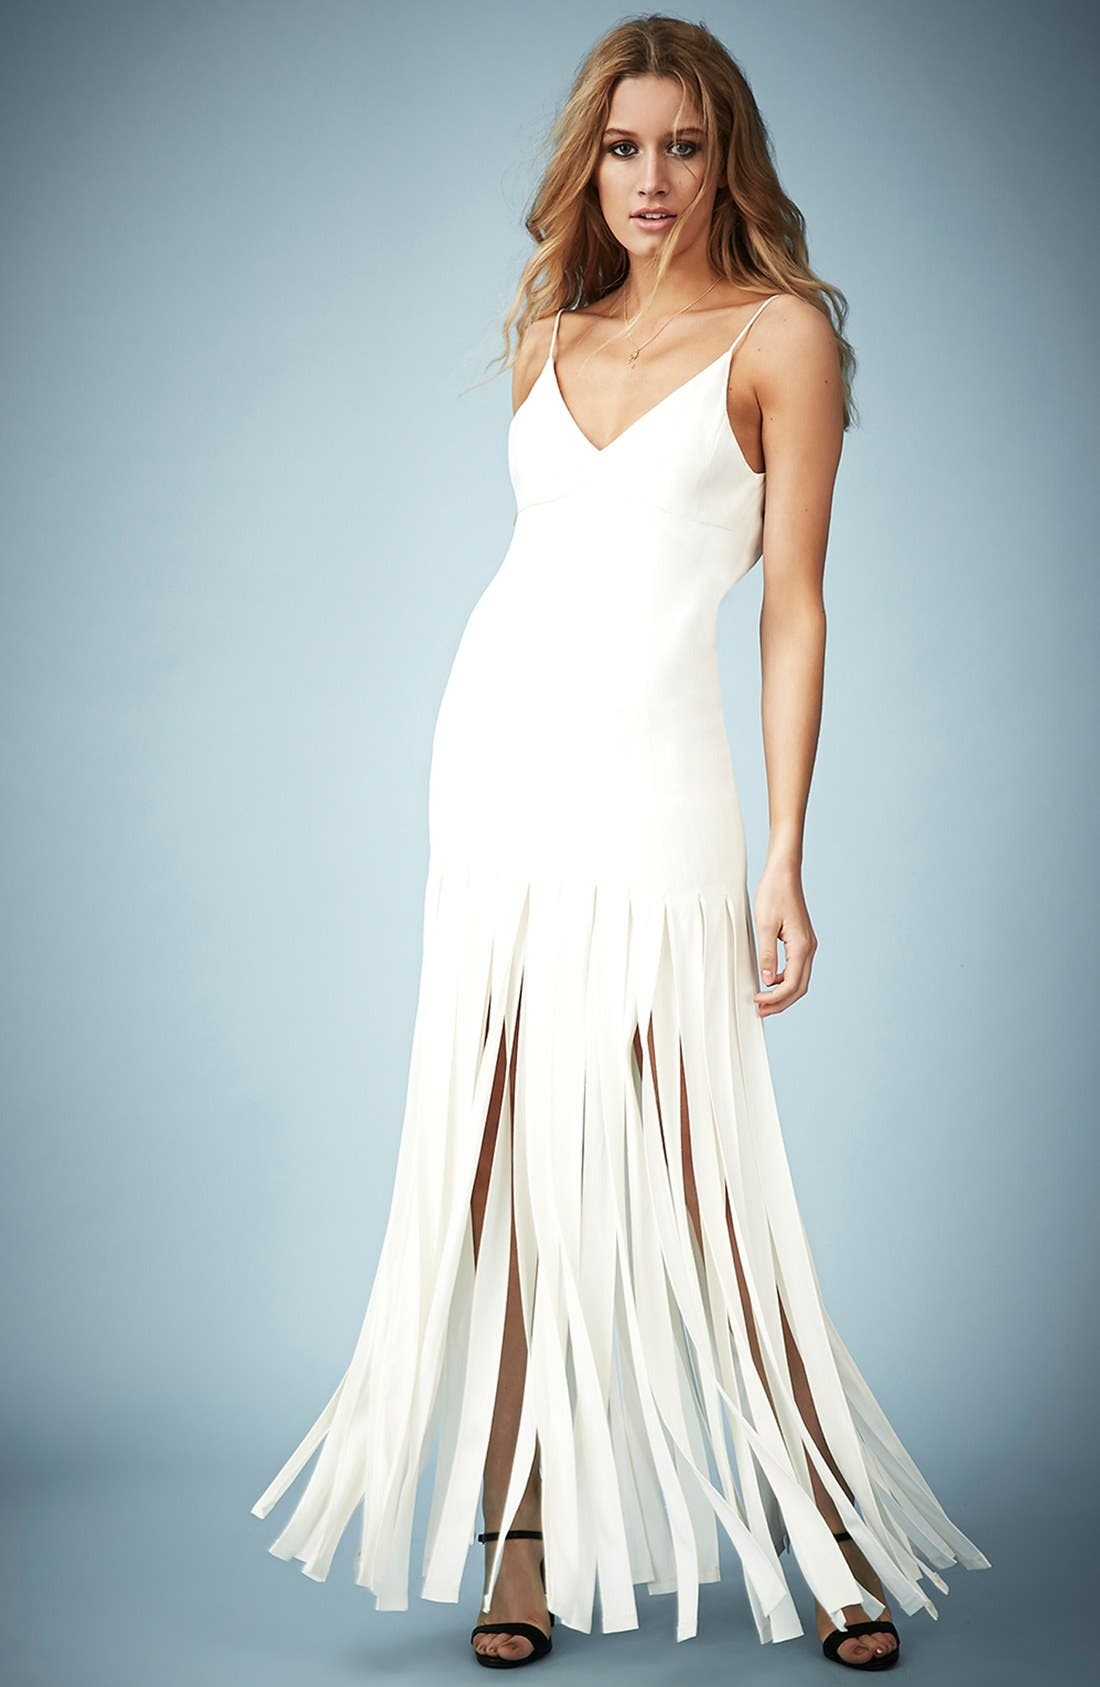 Main Image - Kate Moss for Topshop Splice Skirt Maxi Dress (Online Only)